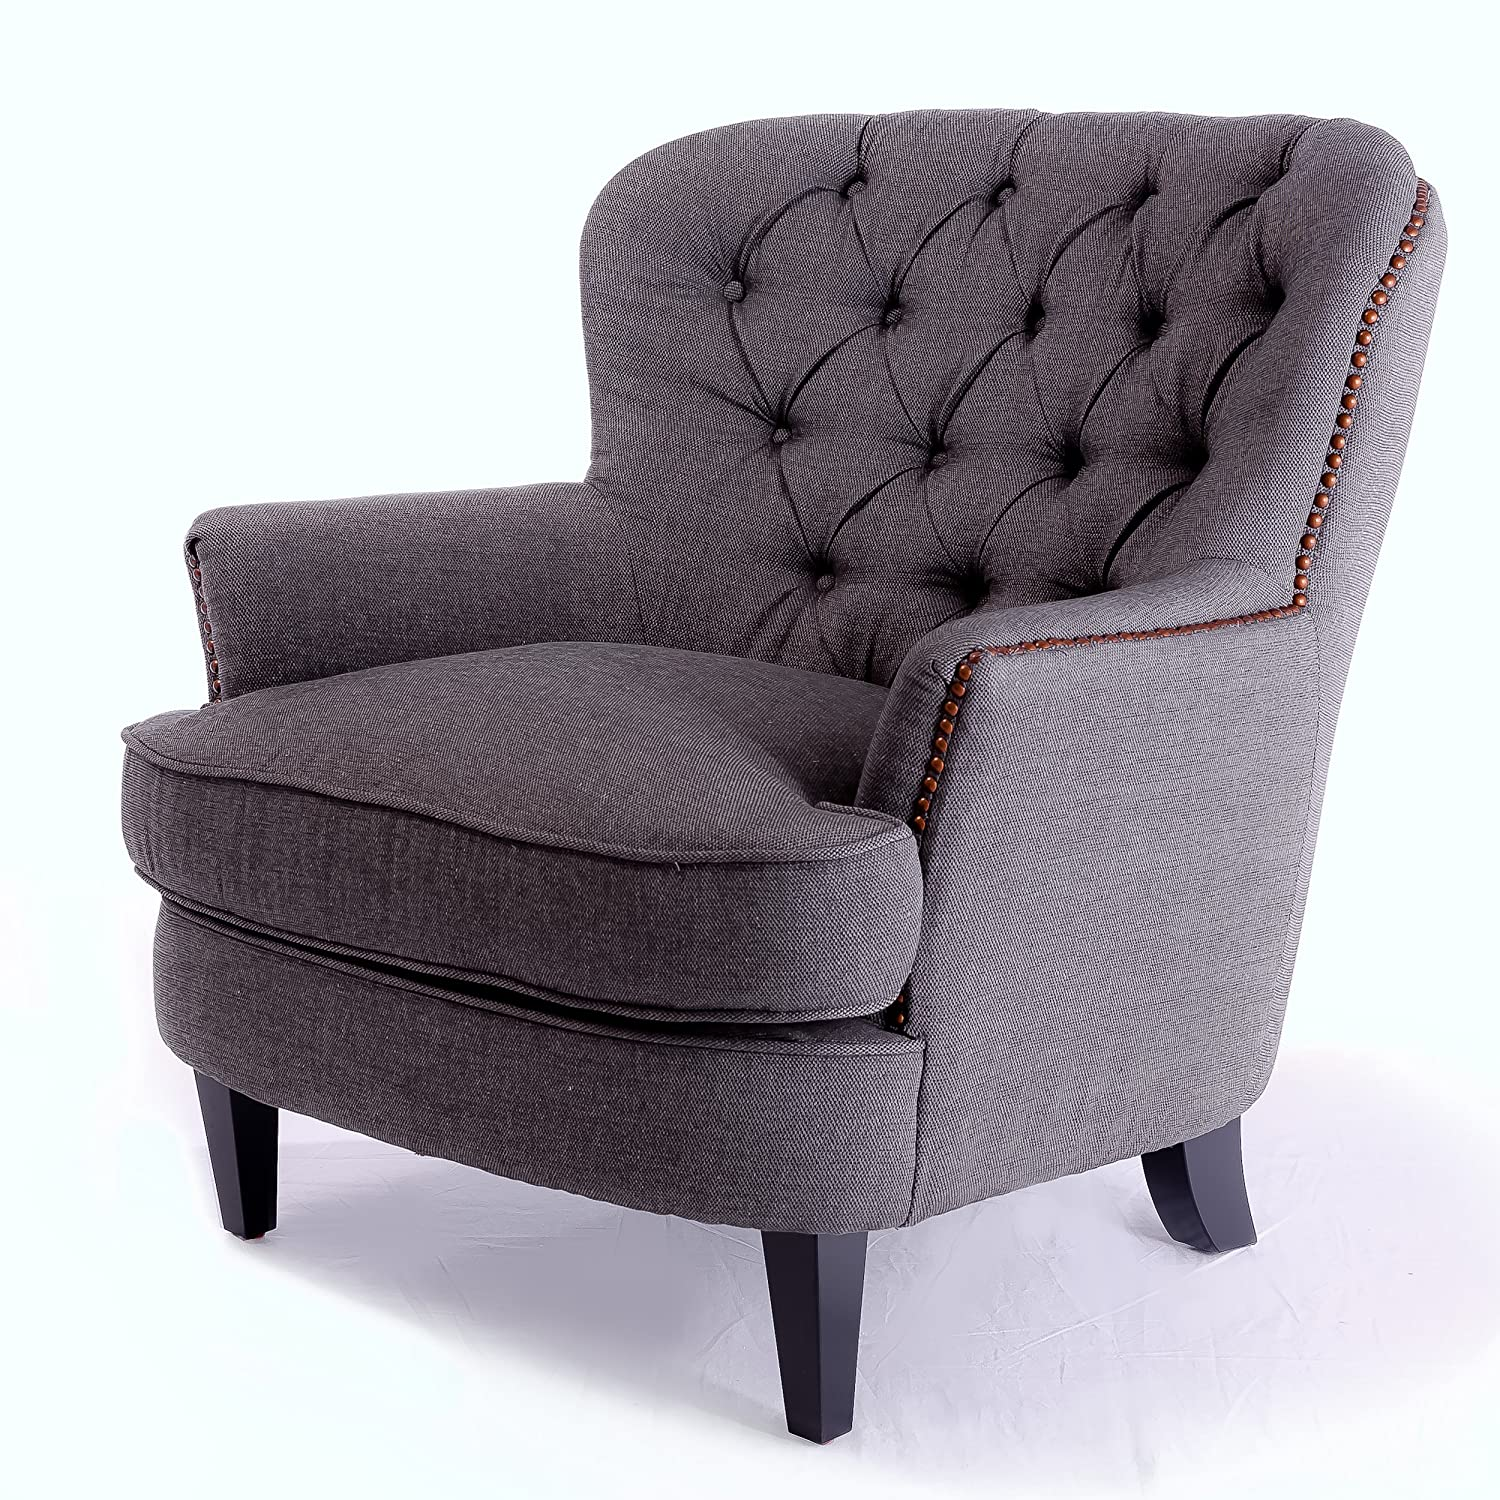 amazoncom alfred tufted grey fabric club chair kitchen  dining -